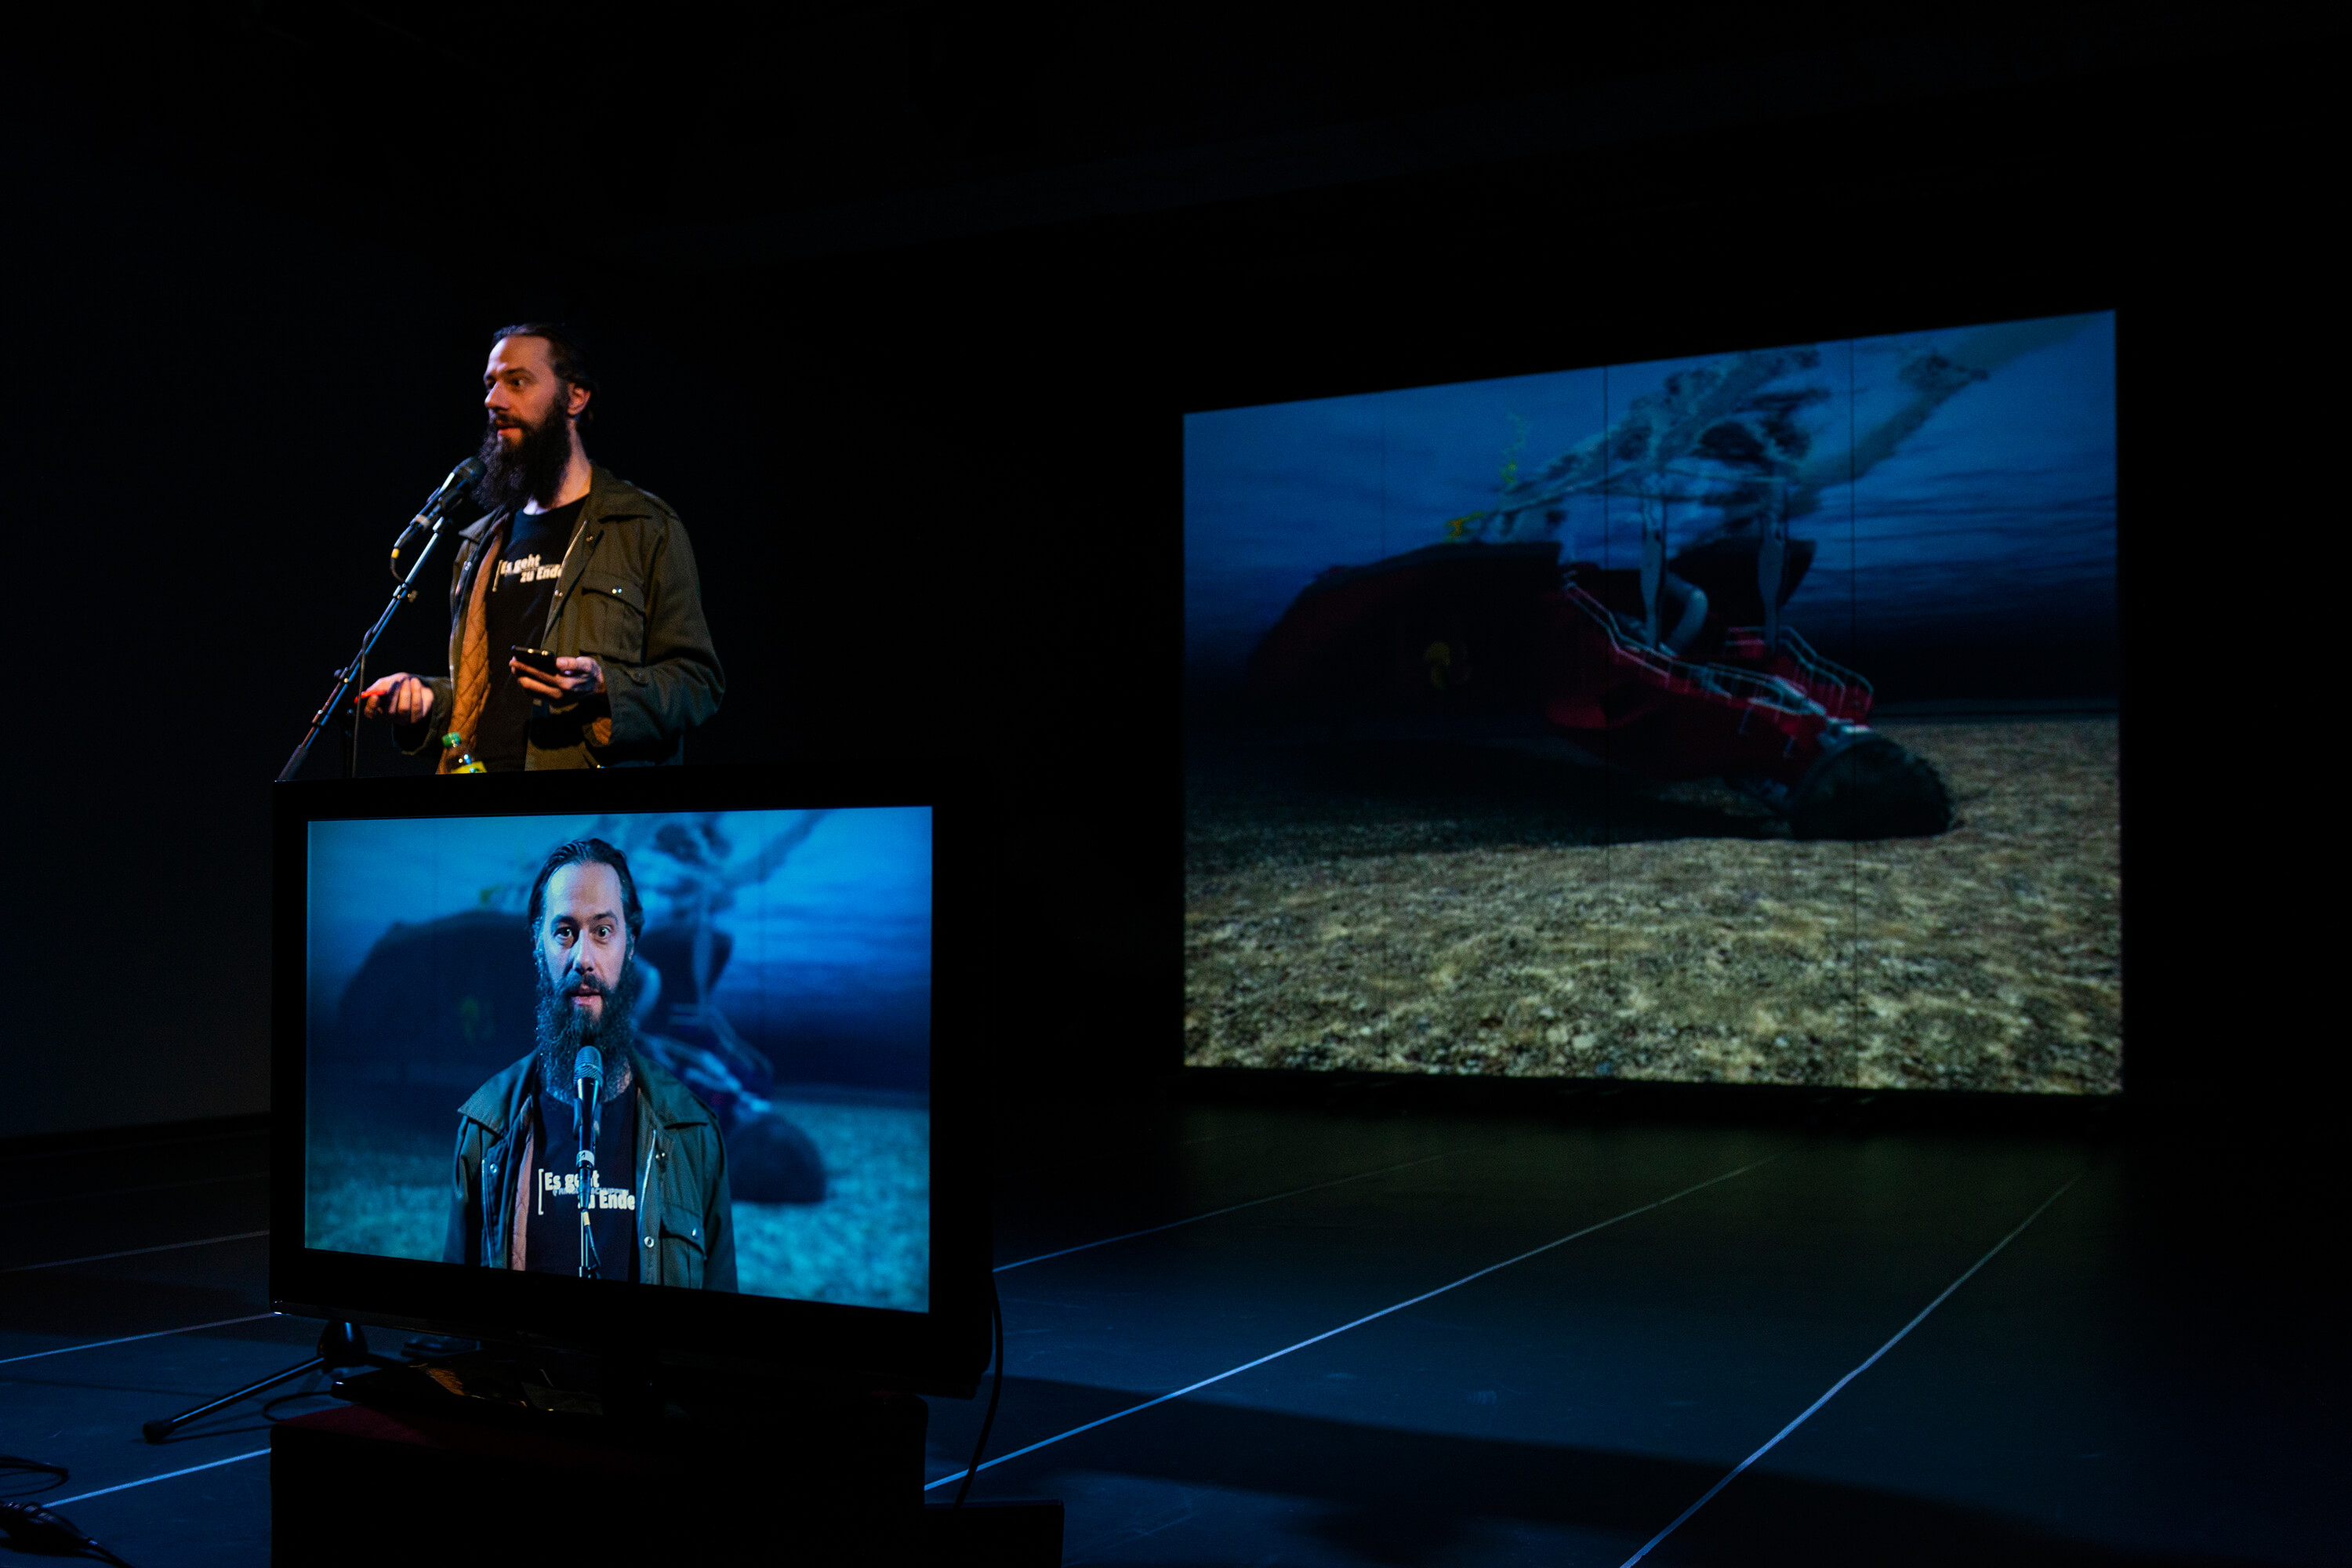 Arne Vogelgesang is standing on a stage with a monitor in front of him and a screen suspended behind him.